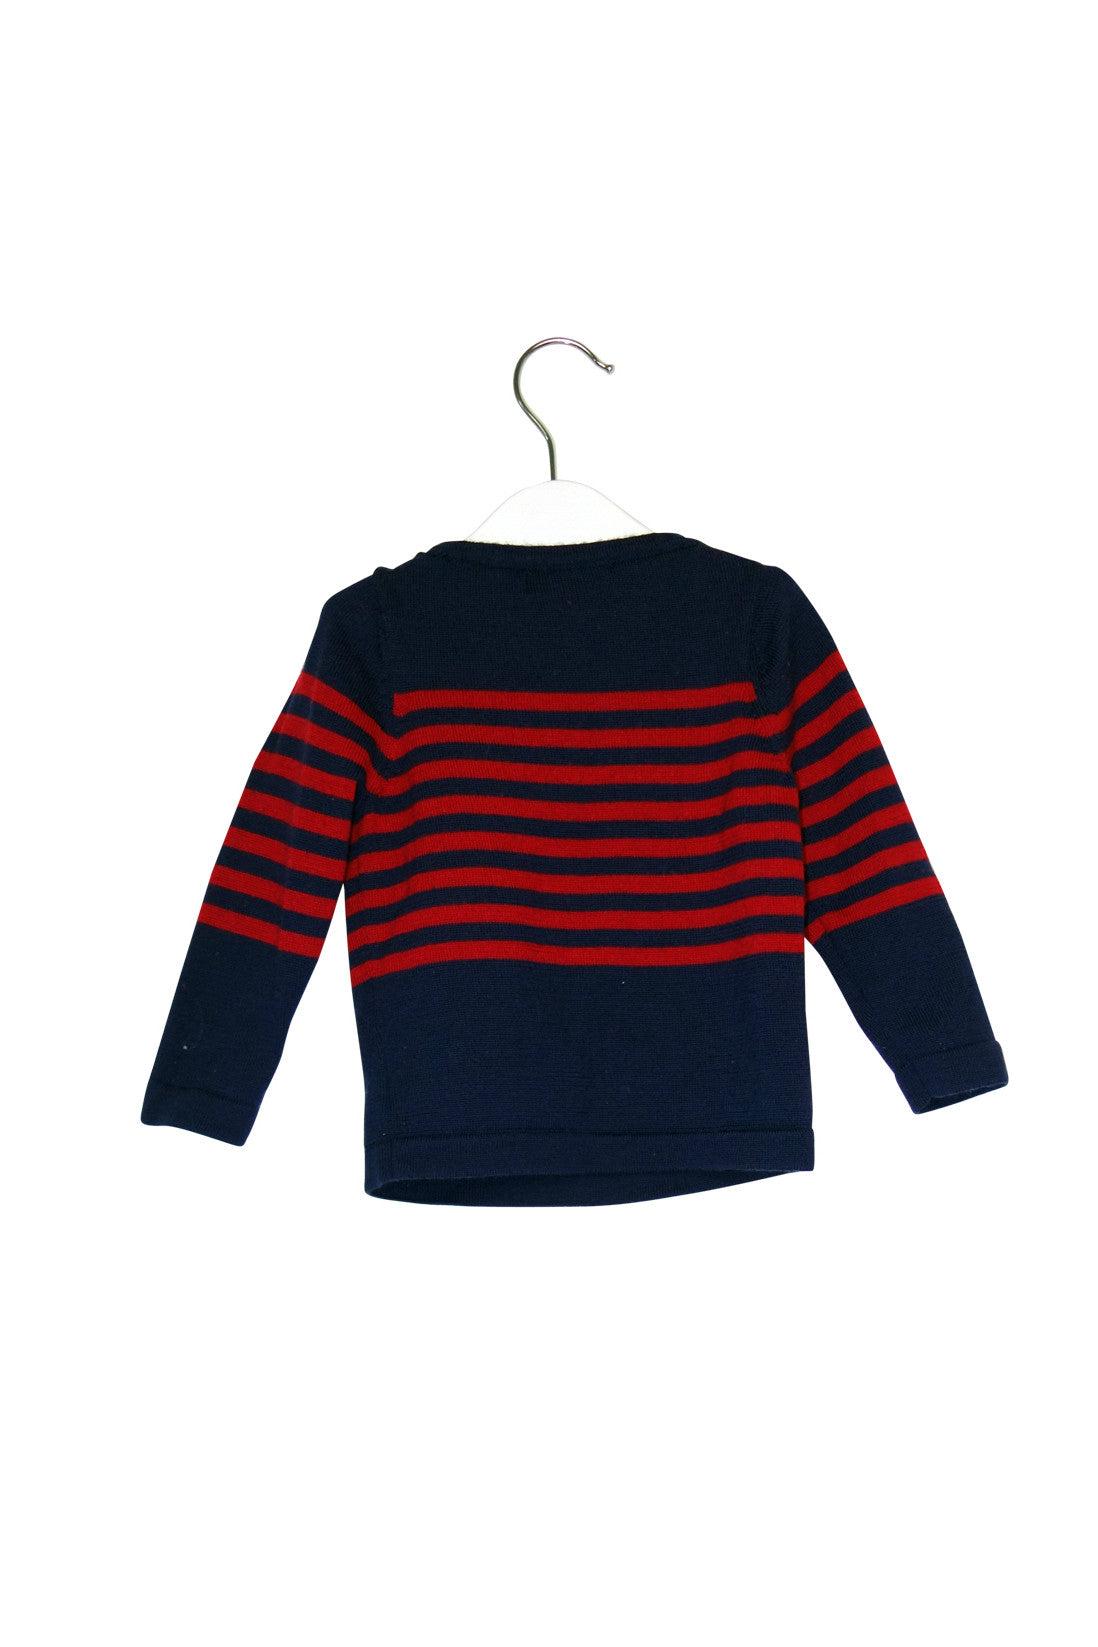 10001393 Nicholas & Bears Baby~Sweater 18M at Retykle